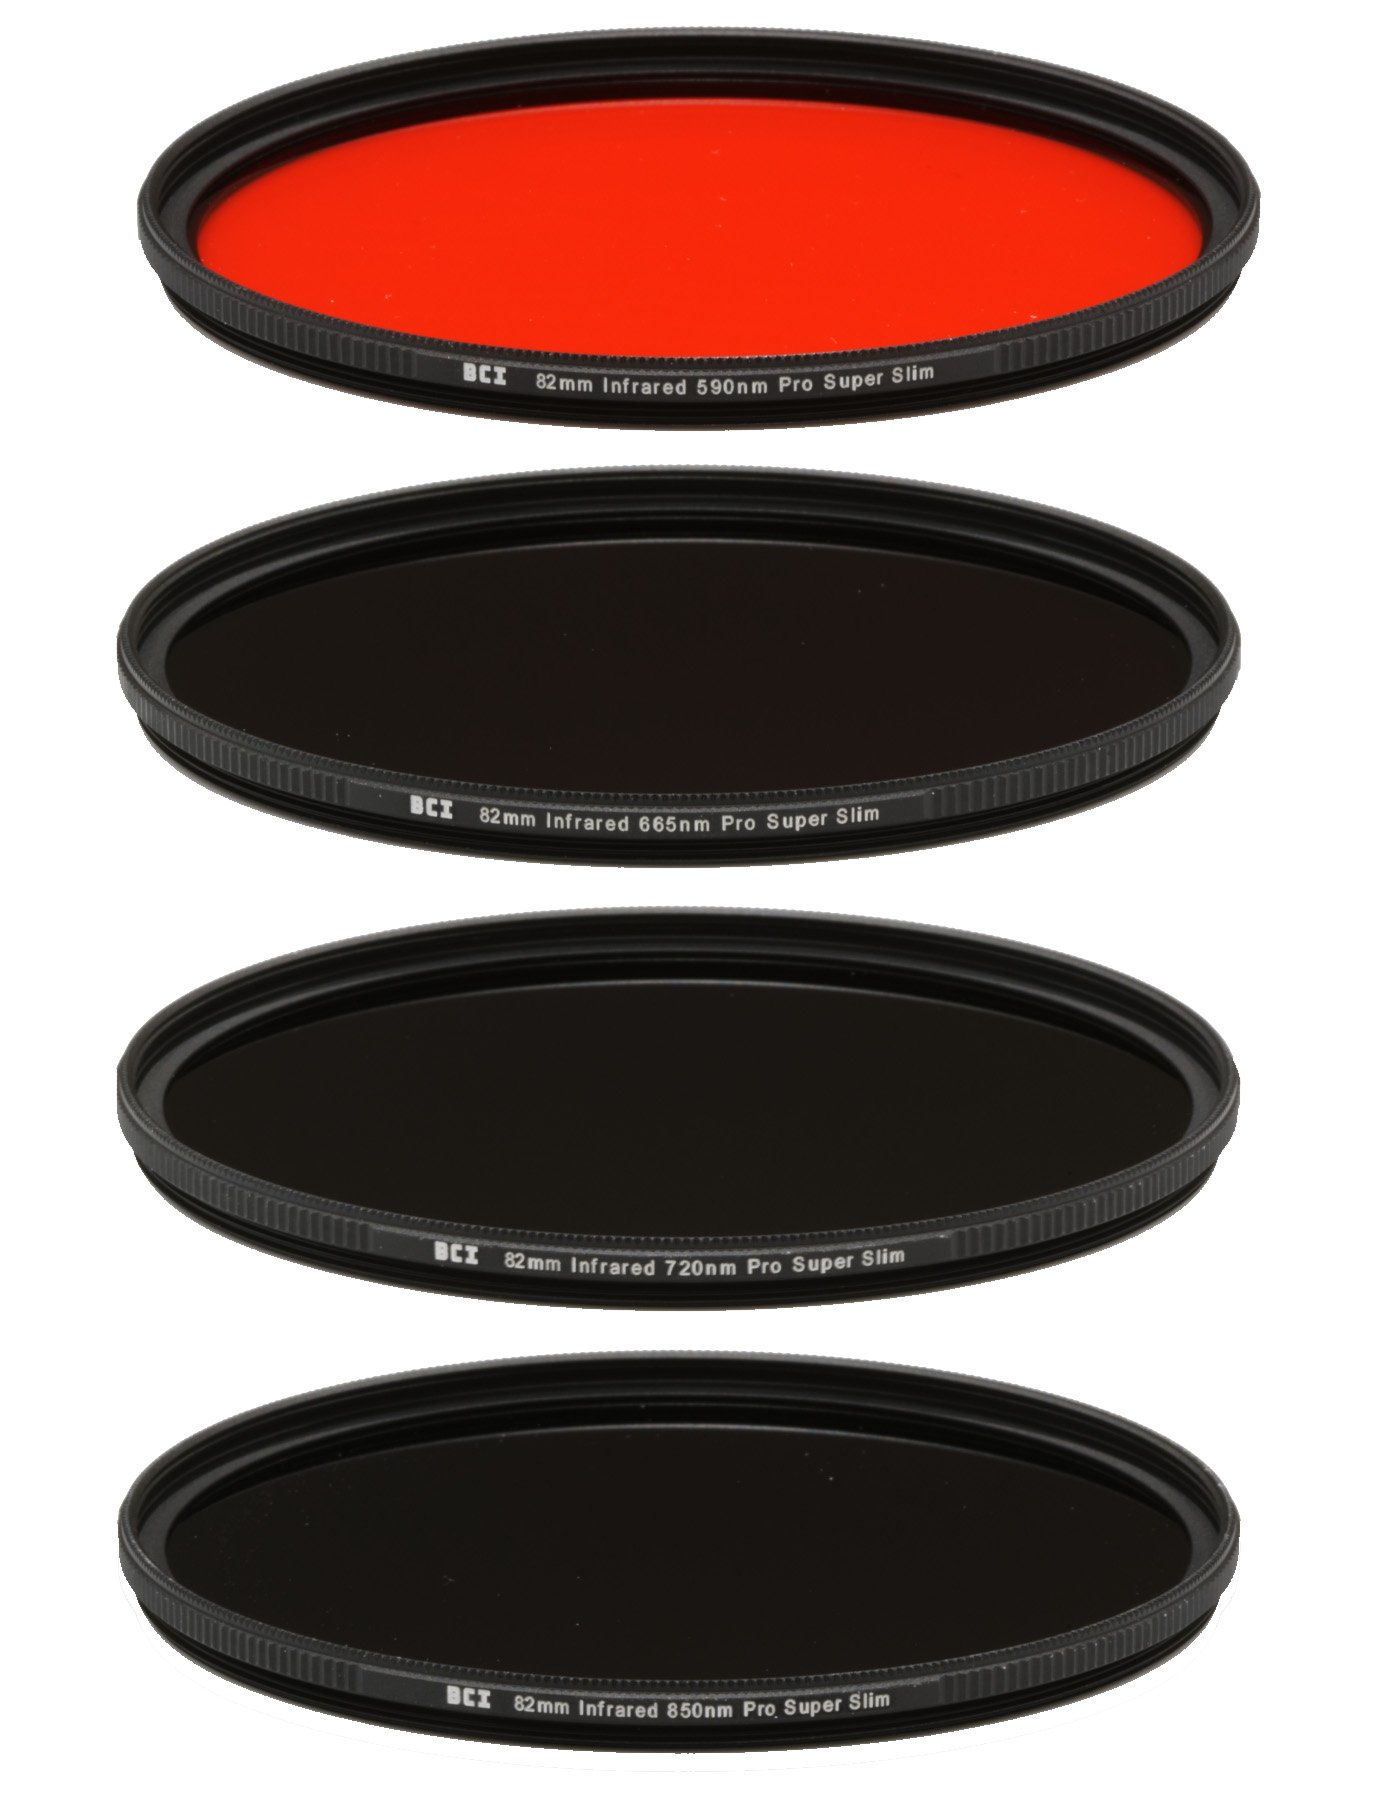 Bear Claw Industries 82mm Infrared Filter Set (590nm+665nm+720nm+850nm)